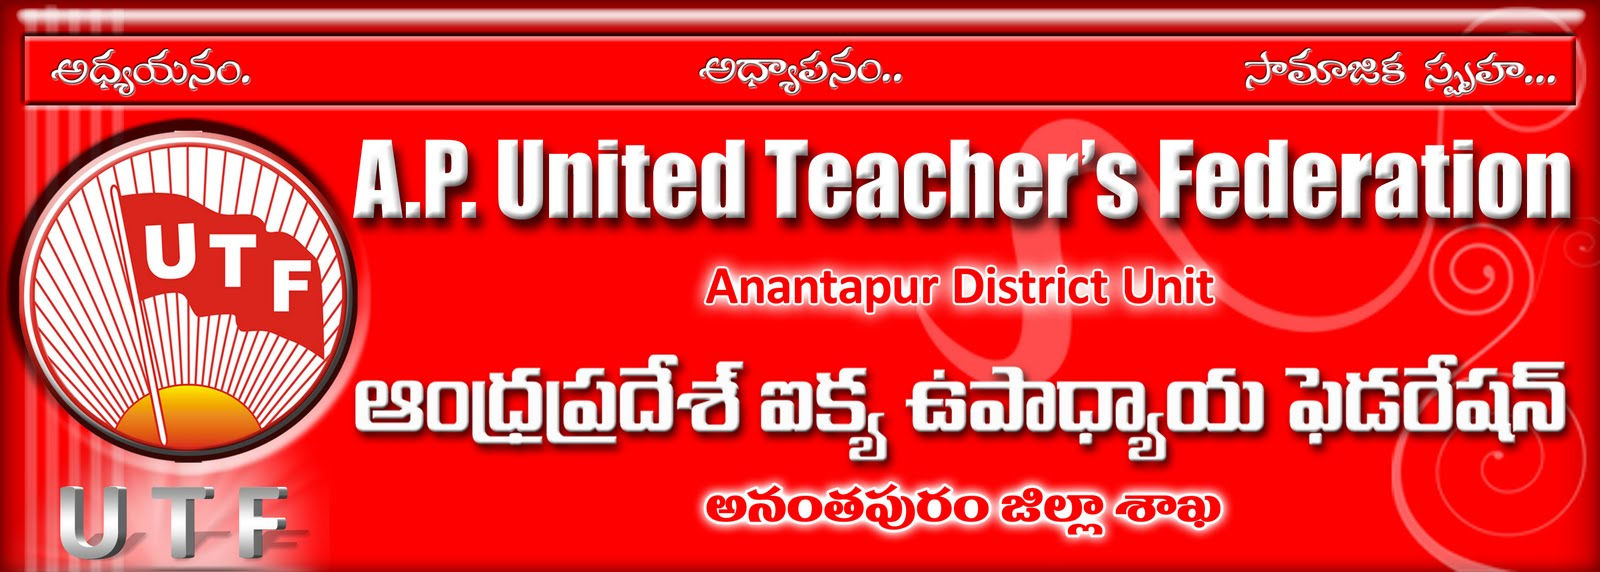 A.P.U.T.F. ANANTAPUR DISTRICT UNIT